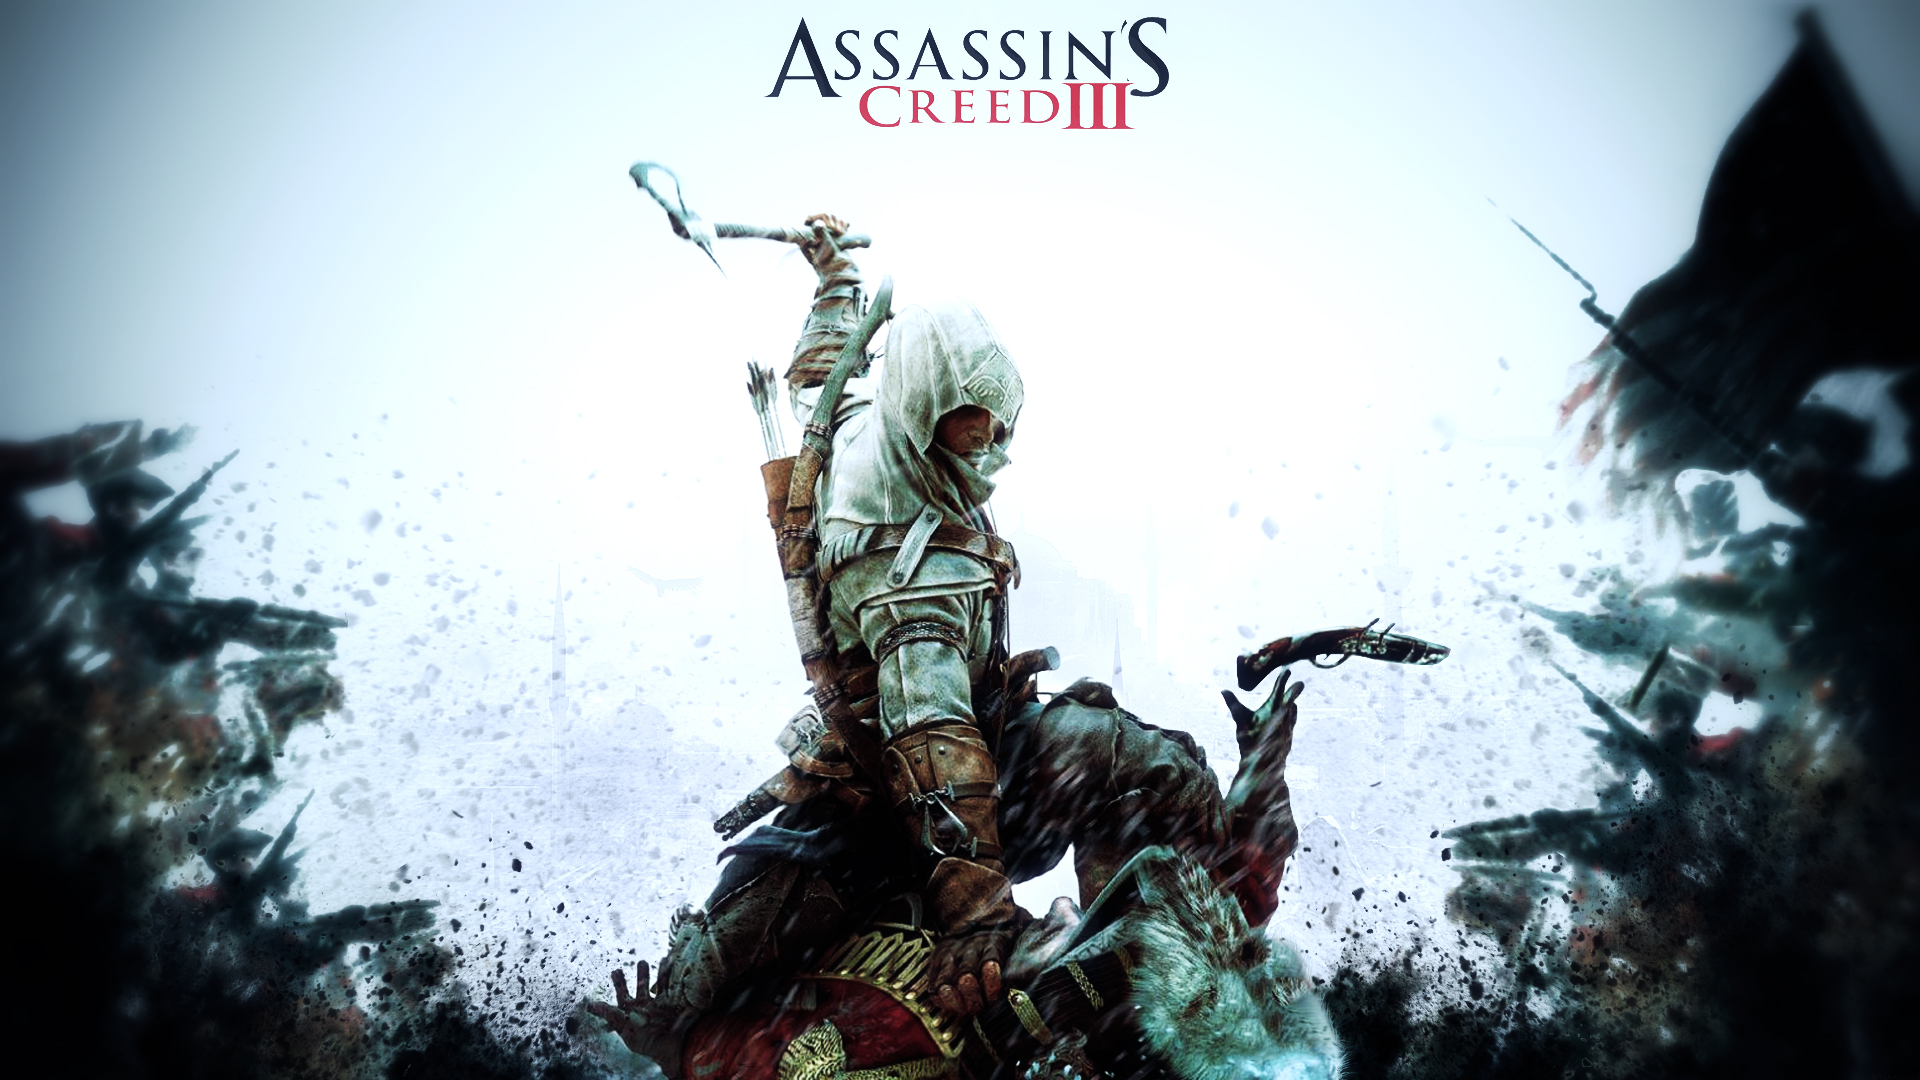 Assassins Creed wallpapers HDparte 2   Taringa 1920x1080